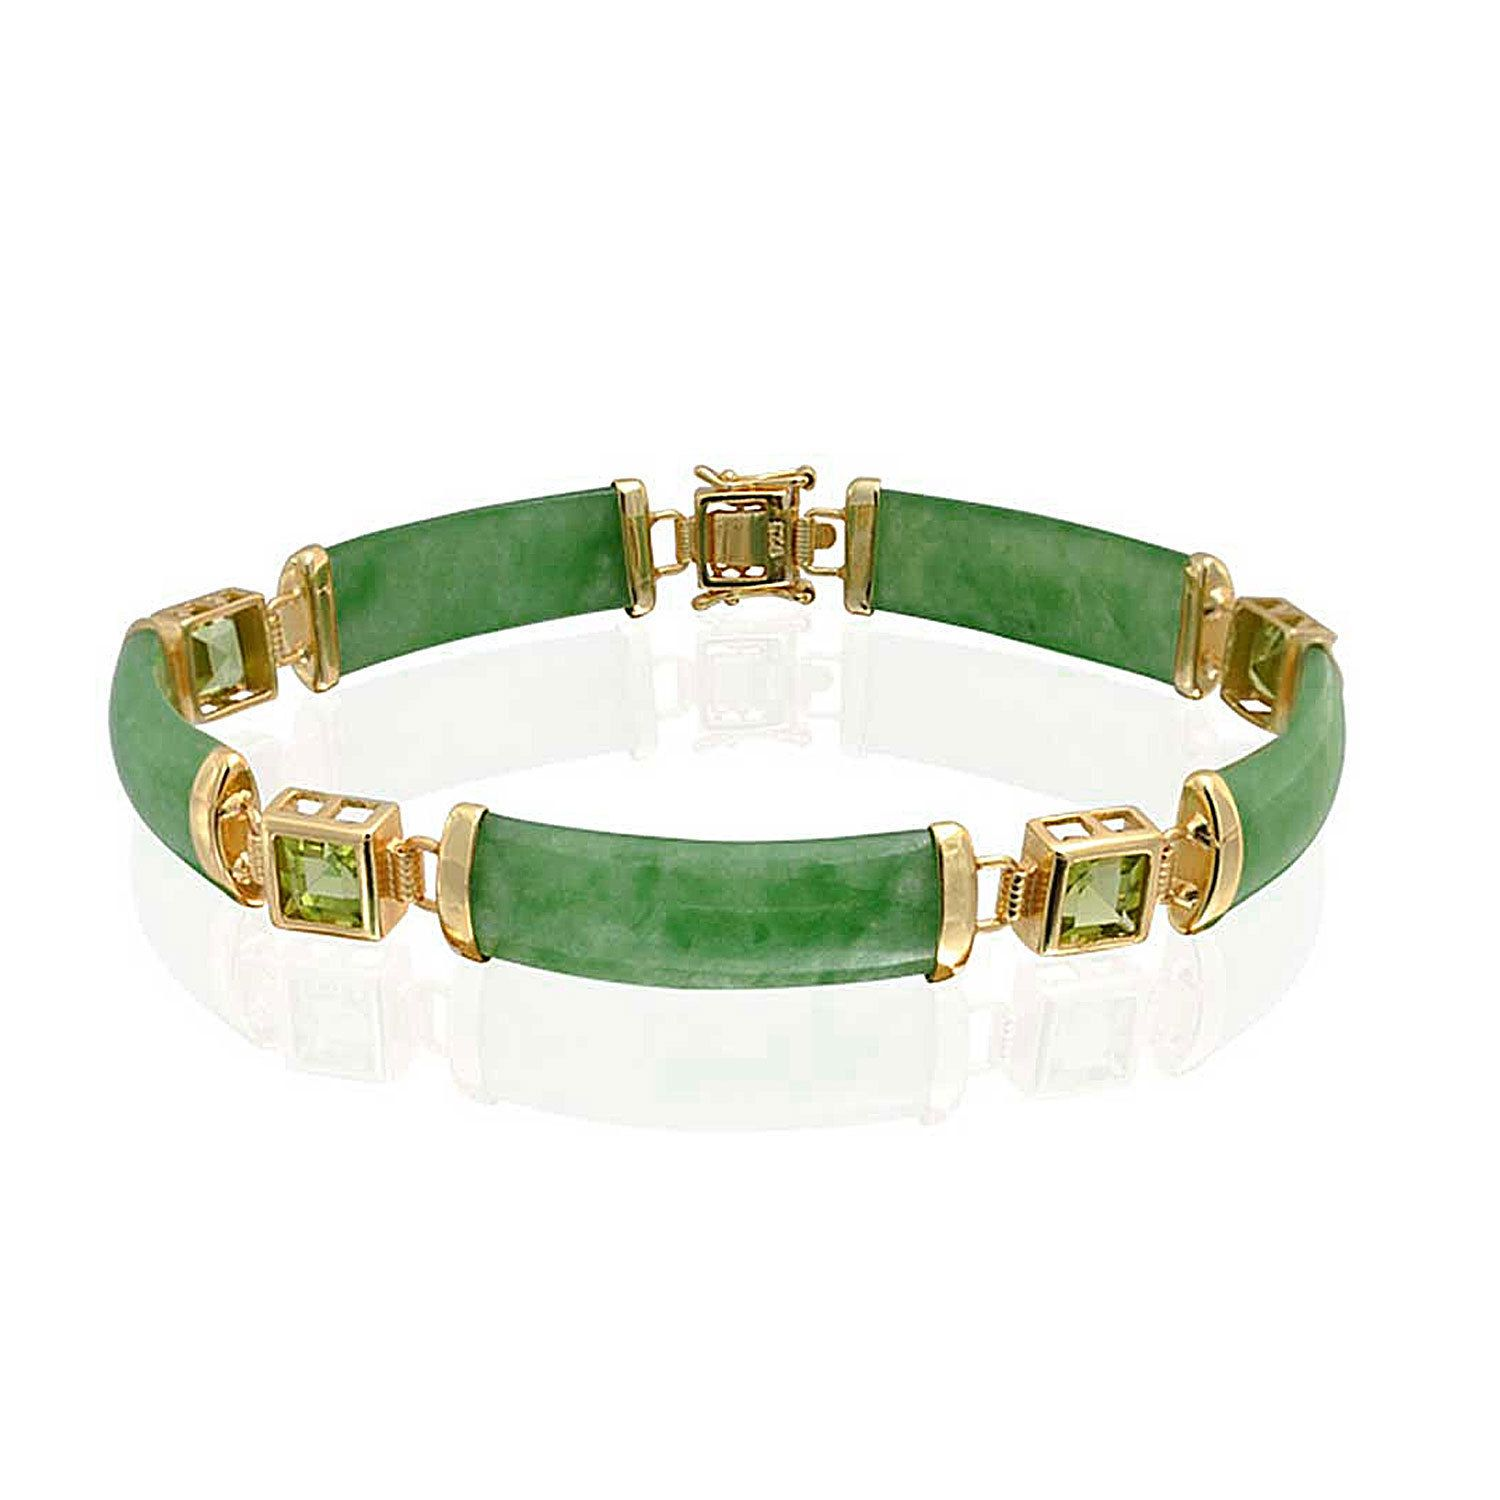 en jewelry zoom il beaded fullxfull green natural african bead listing jade bracelet hk